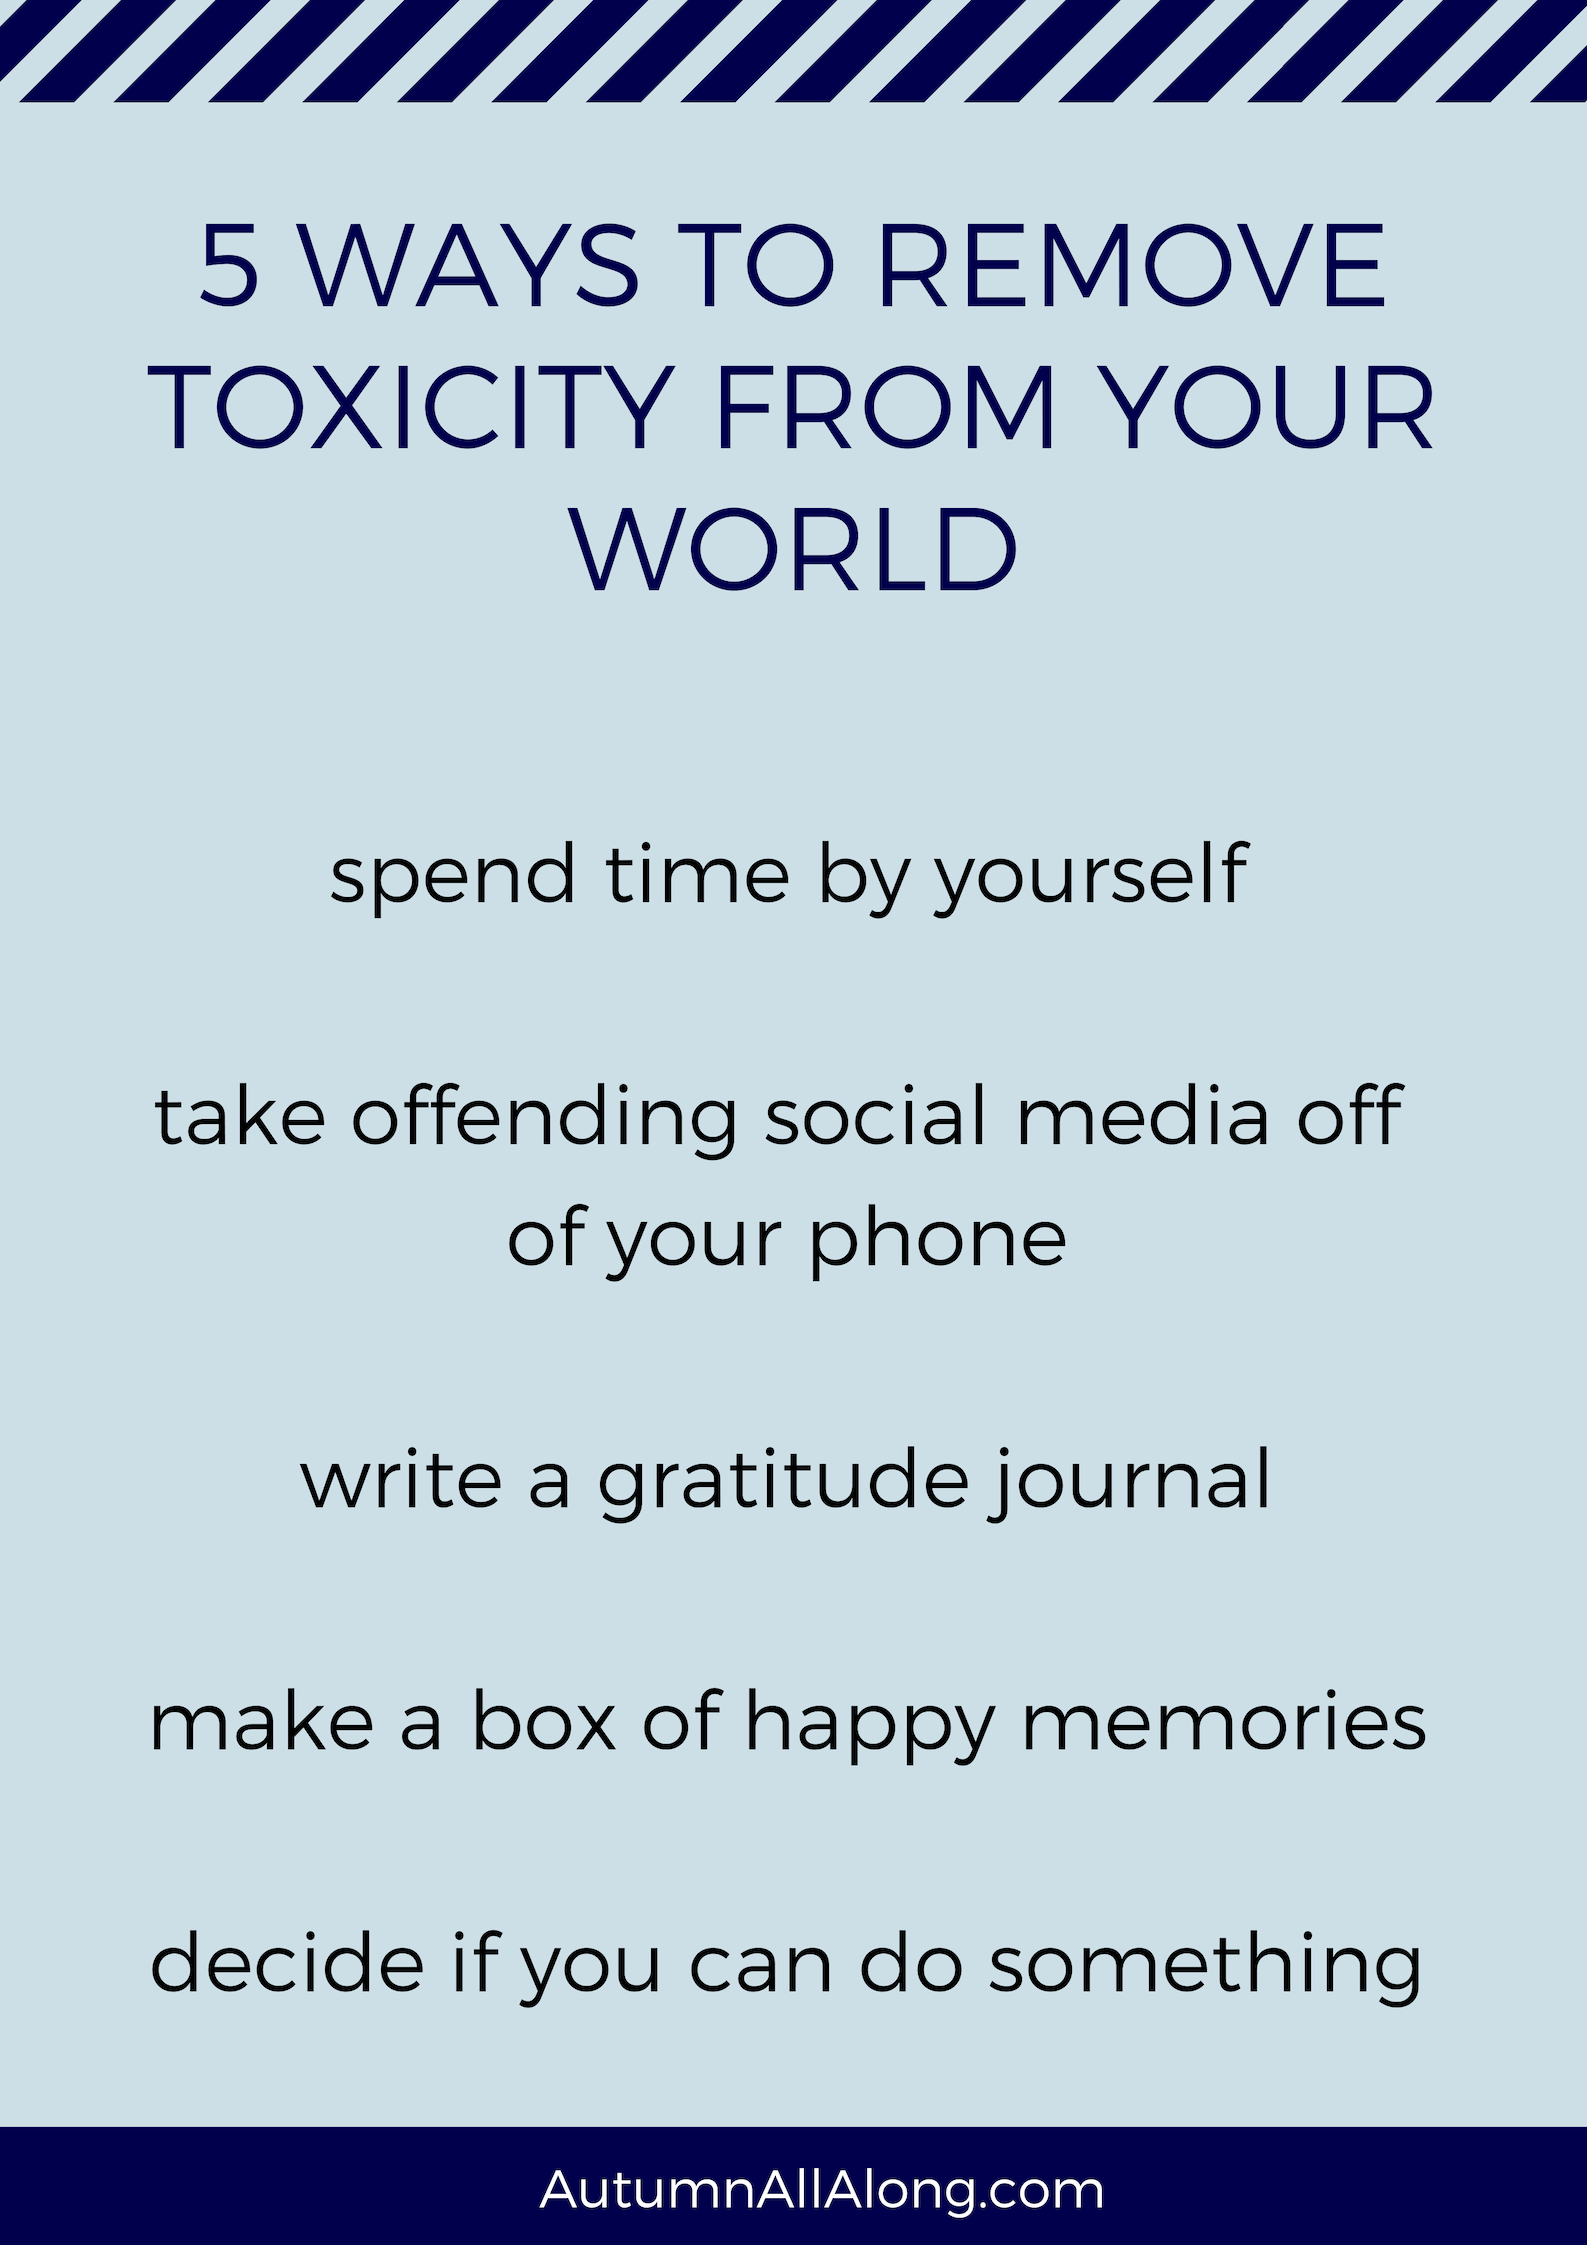 5 ways to remove toxicity from your world | via Autumn All